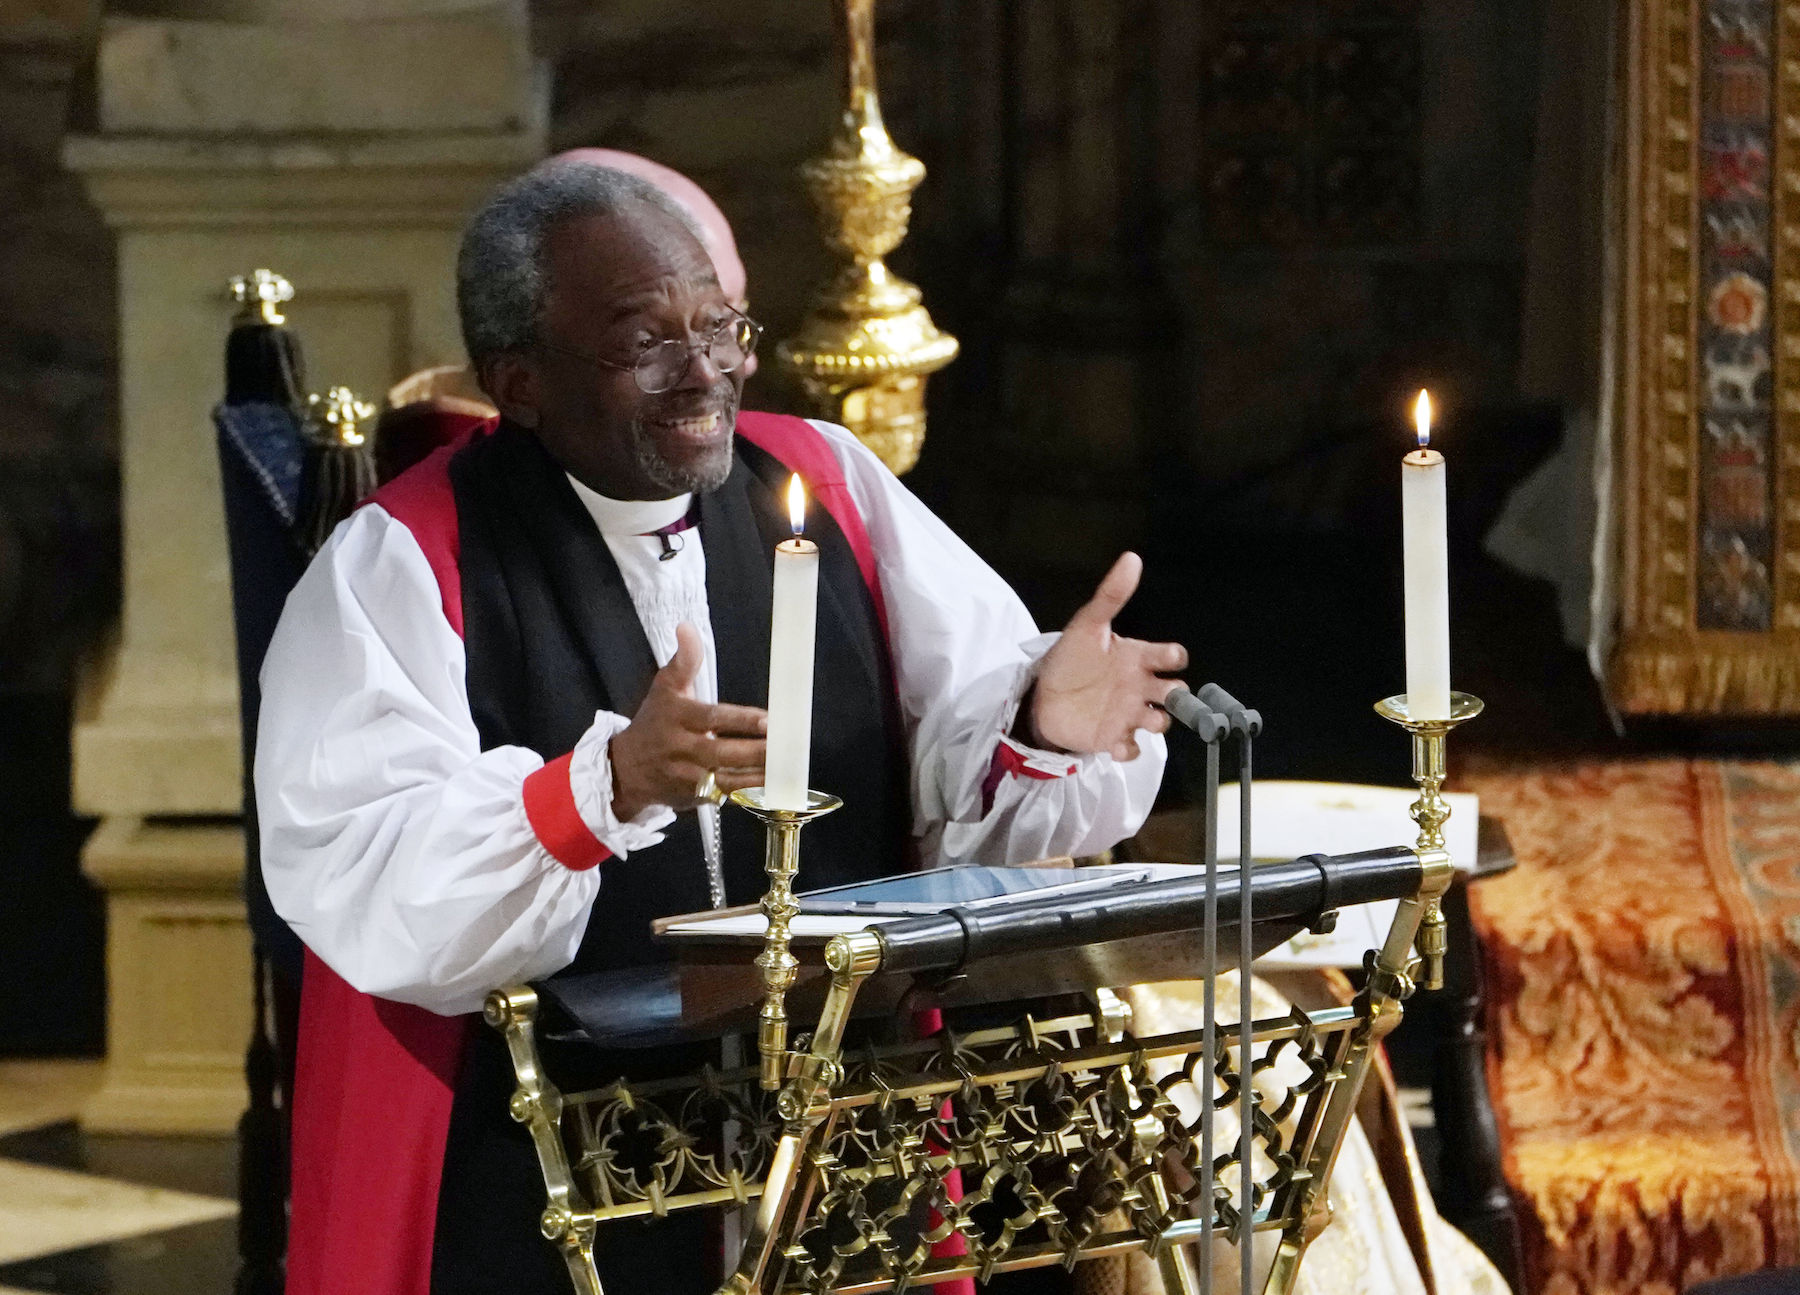 "<div class=""meta image-caption""><div class=""origin-logo origin-image kgo""><span>kgo</span></div><span class=""caption-text"">The Most Rev Bishop Michael Curry, primate of the Episcopal Church, gives an address during the wedding of Prince Harry and Meghan Markle. (Owen Humphreys/AFP/Getty Images)</span></div>"